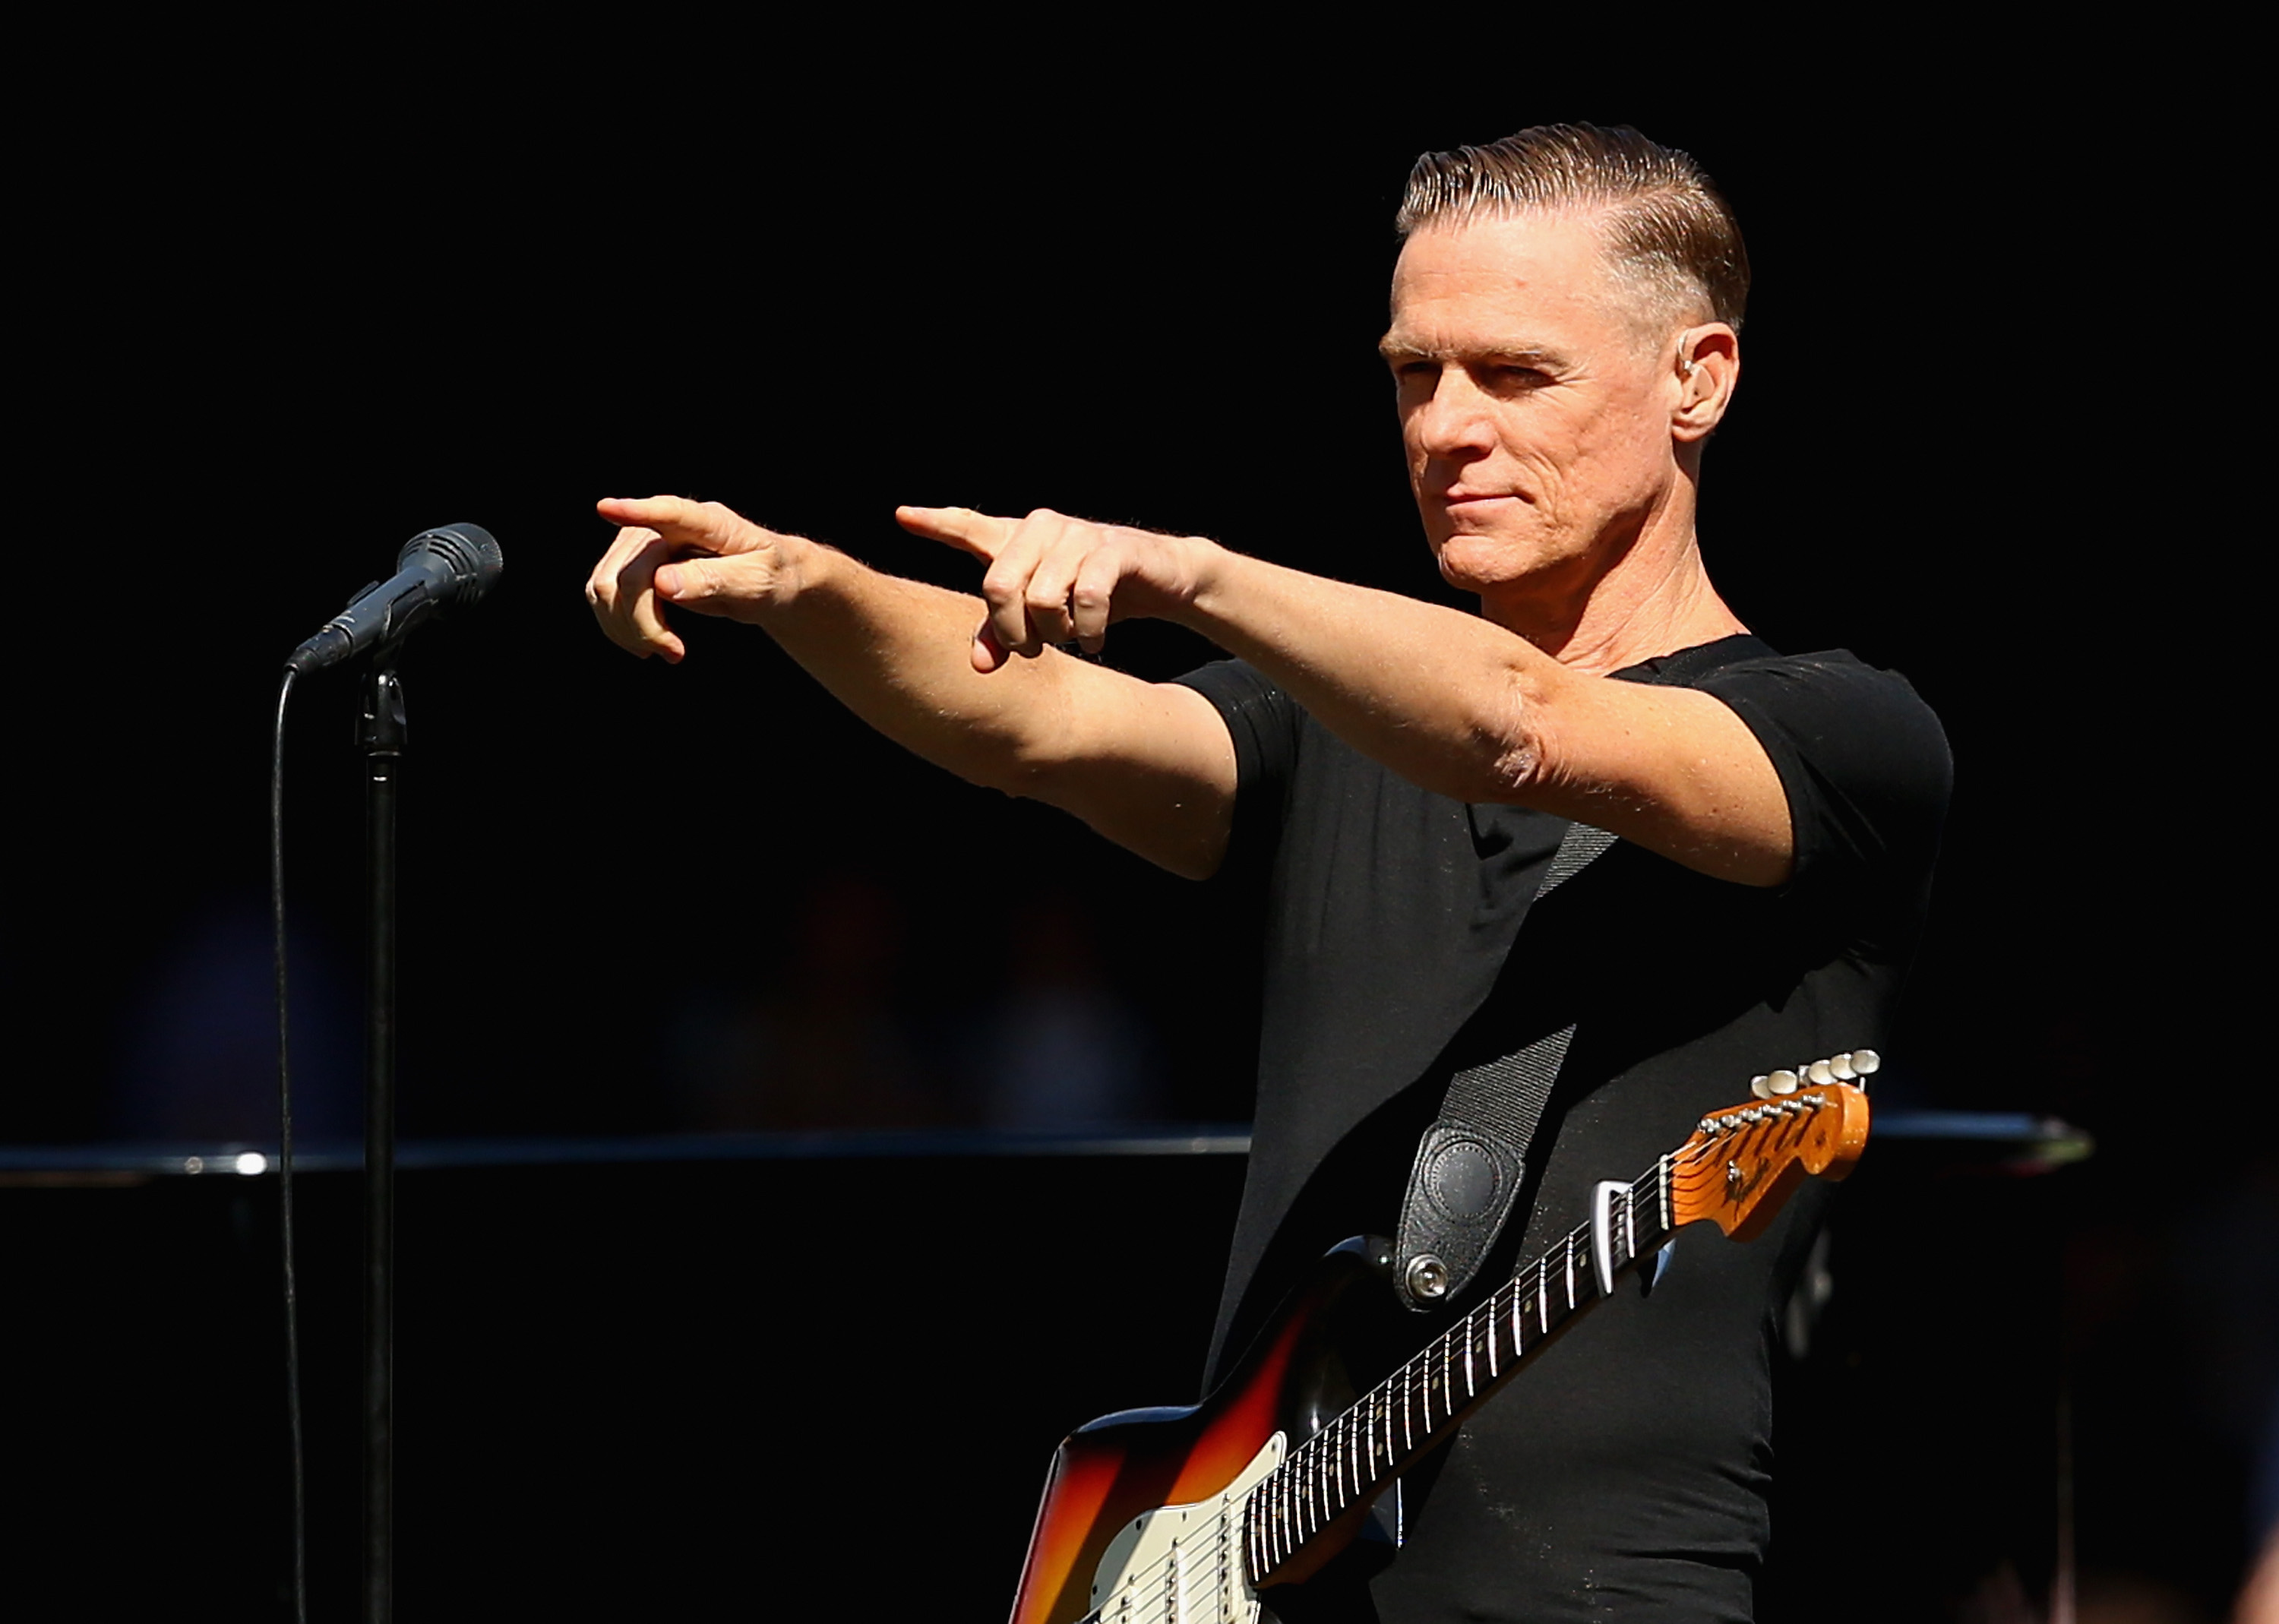 Bryan Adams cancels Mississippi performance because of state's anti-gay laws